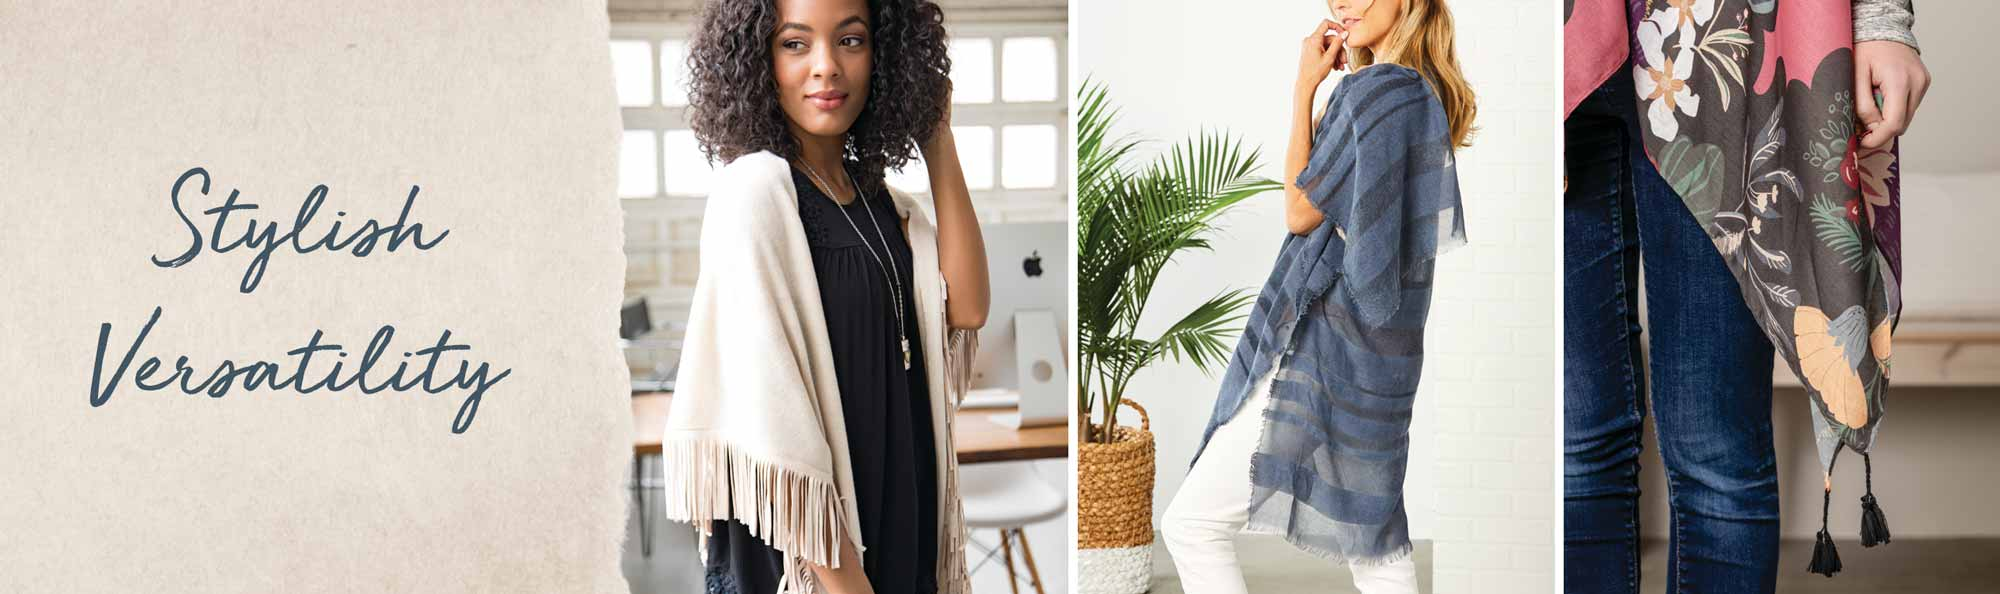 Stylish Versatility, women wearing soft-draping wraps and scarves